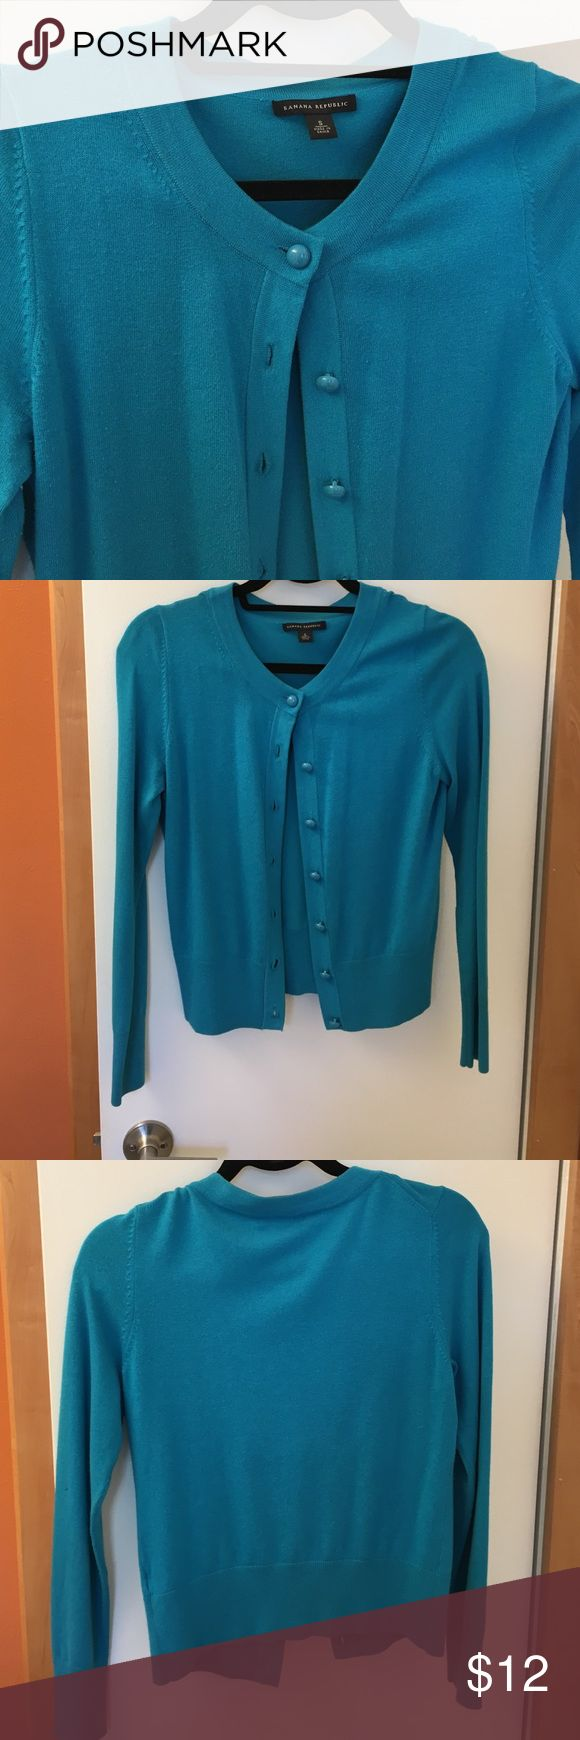 Turquoise cardigan Banana Republic Beautiful fabric and color. Great condition. Buttons look fresh and stylish. Banana Republic Sweaters Cardigans